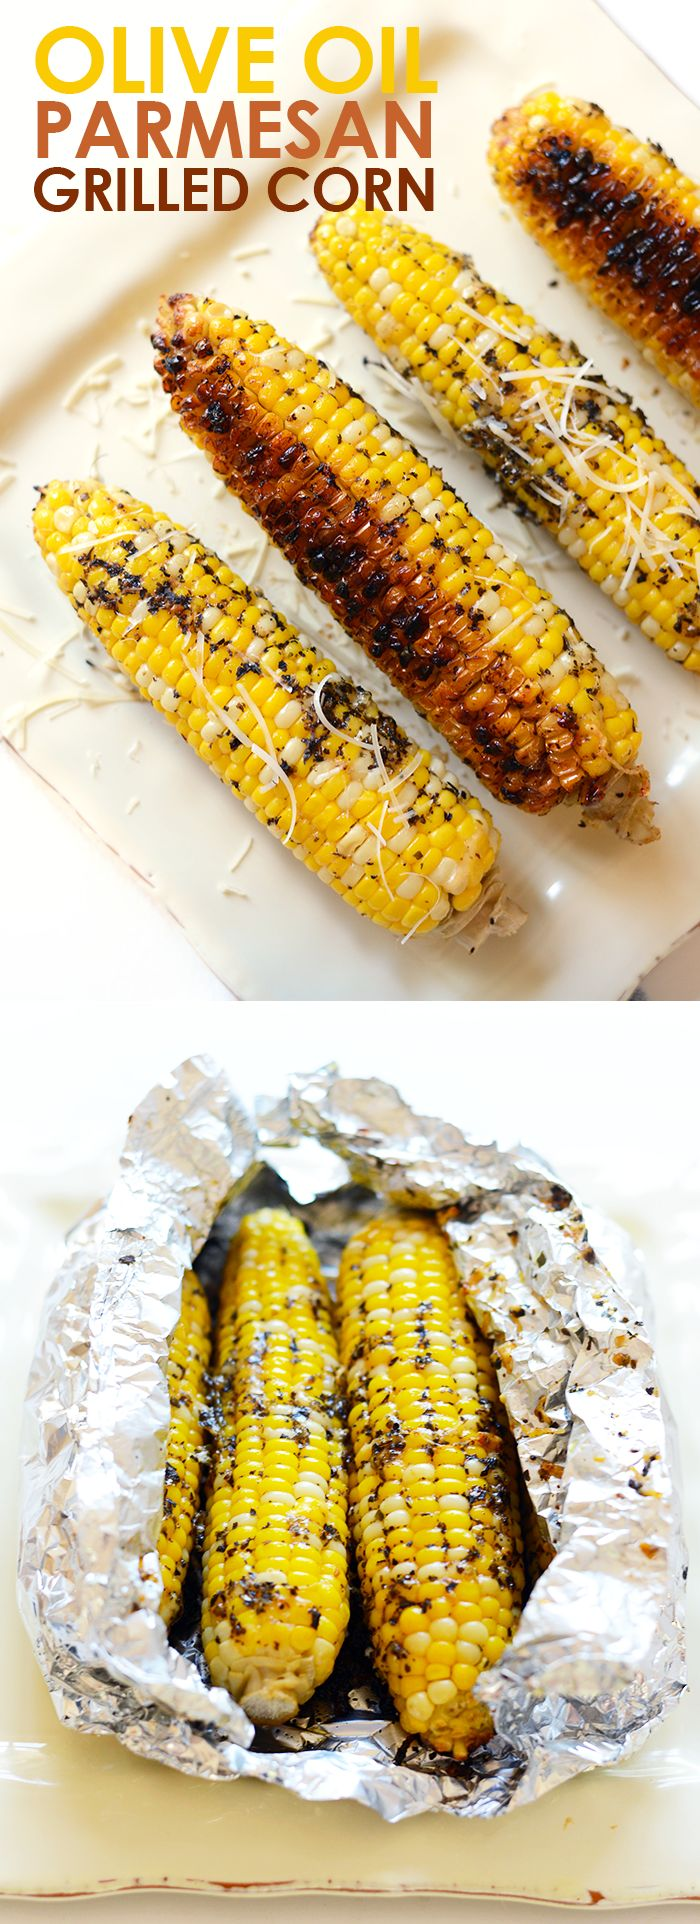 Best 25 grilling corn ideas on pinterest grilled corn recipe olive oil parmesan grilled cheese corn not my idea ccuart Image collections